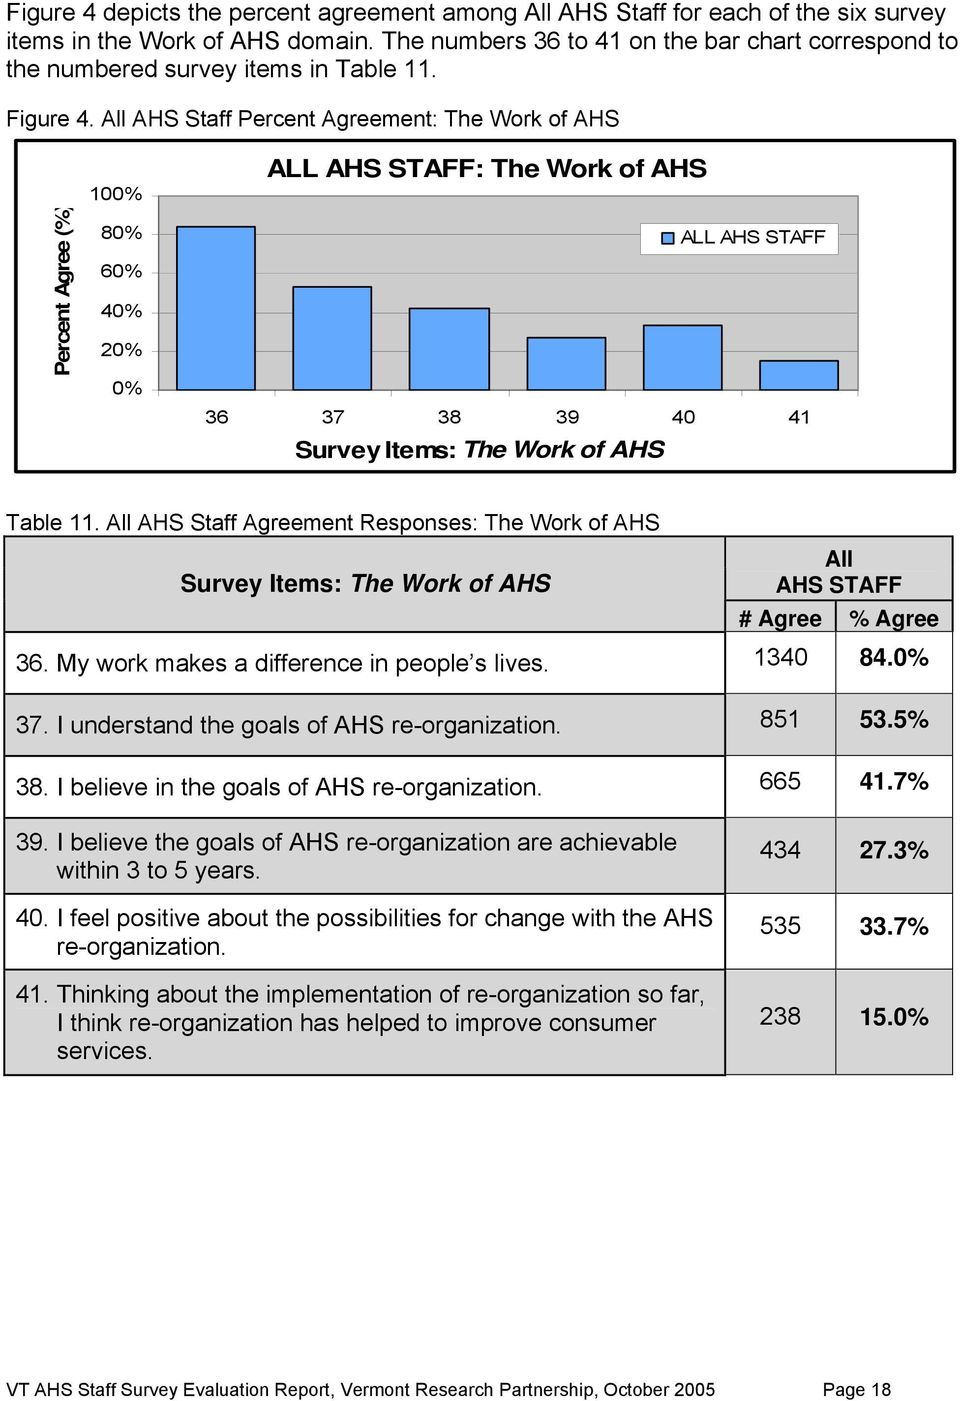 All AHS Staff Percent ment: The Work of AHS Percent (%) 100% 80% 60% 40% 20% 0% ALL AHS STAFF: The Work of AHS ALL AHS STAFF 36 37 38 39 40 41 Survey Items: The Work of AHS Table 11.